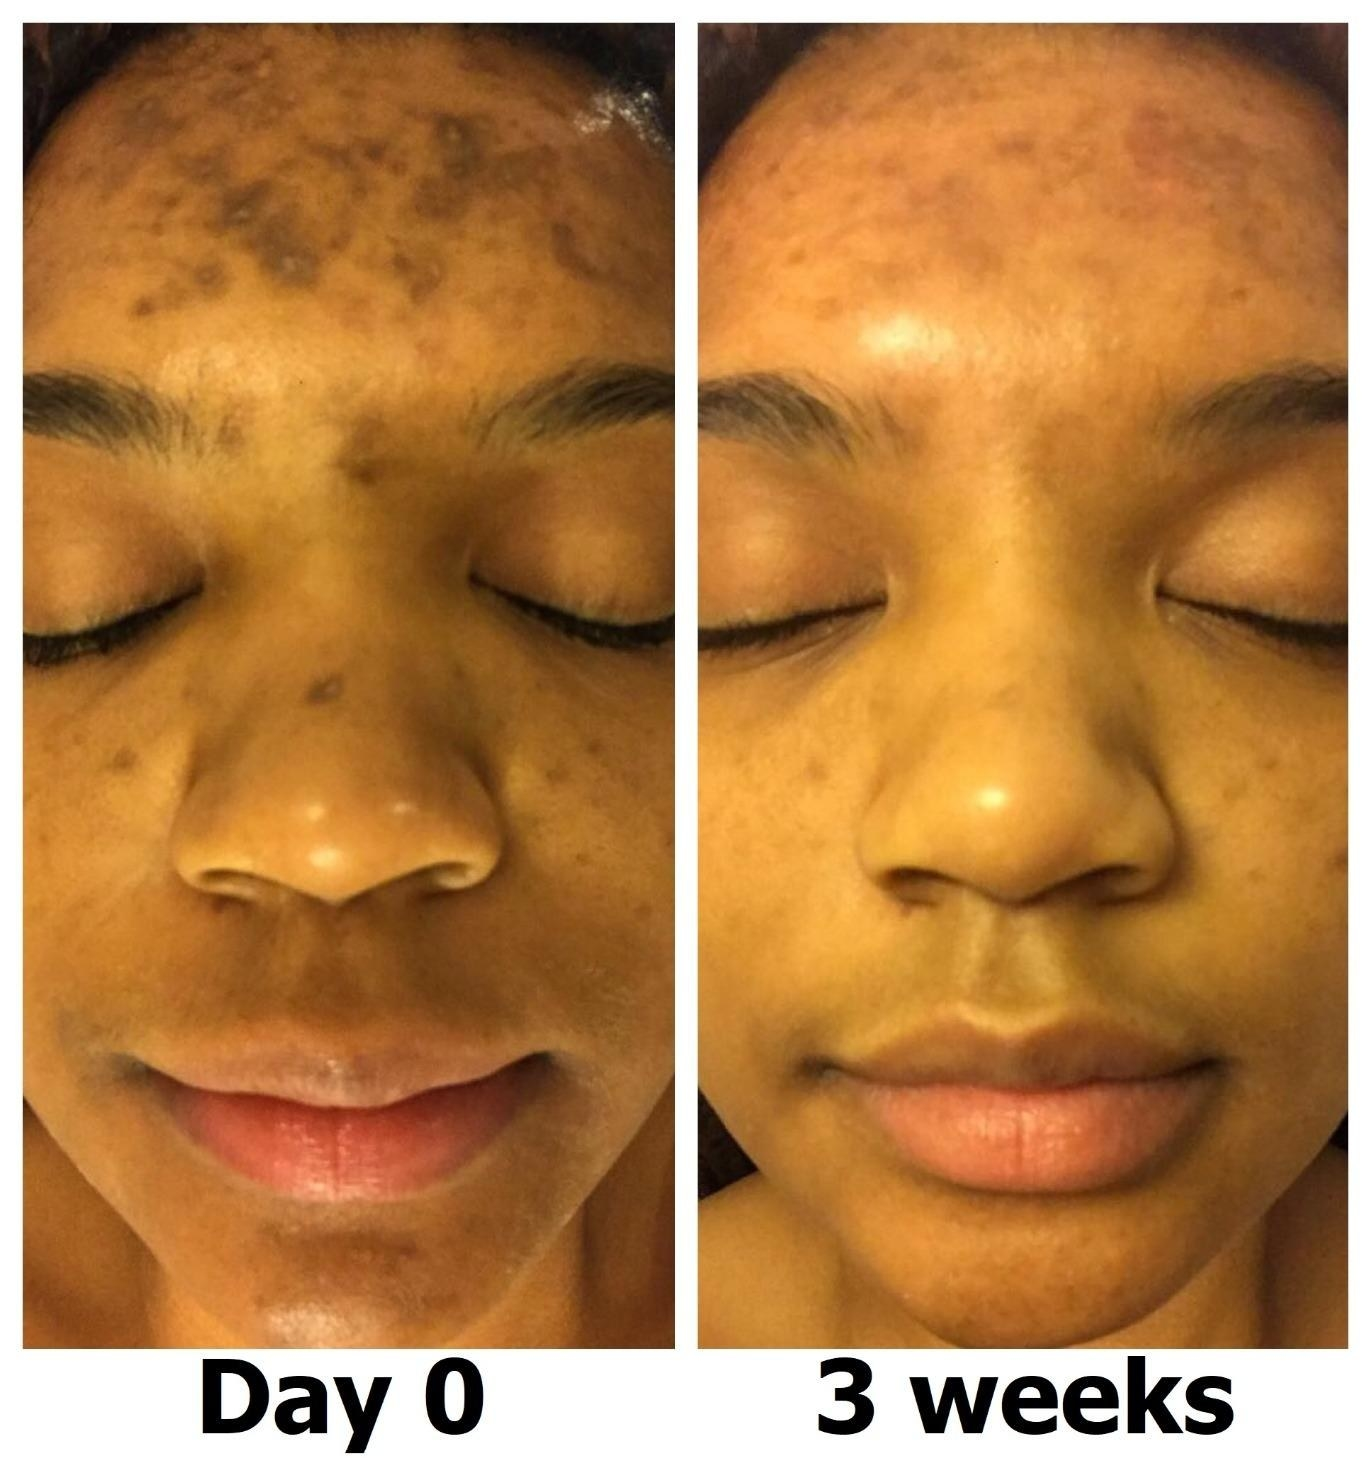 Reviewer's progression photos showing the product dramatically reduced their dark spots in three weeks